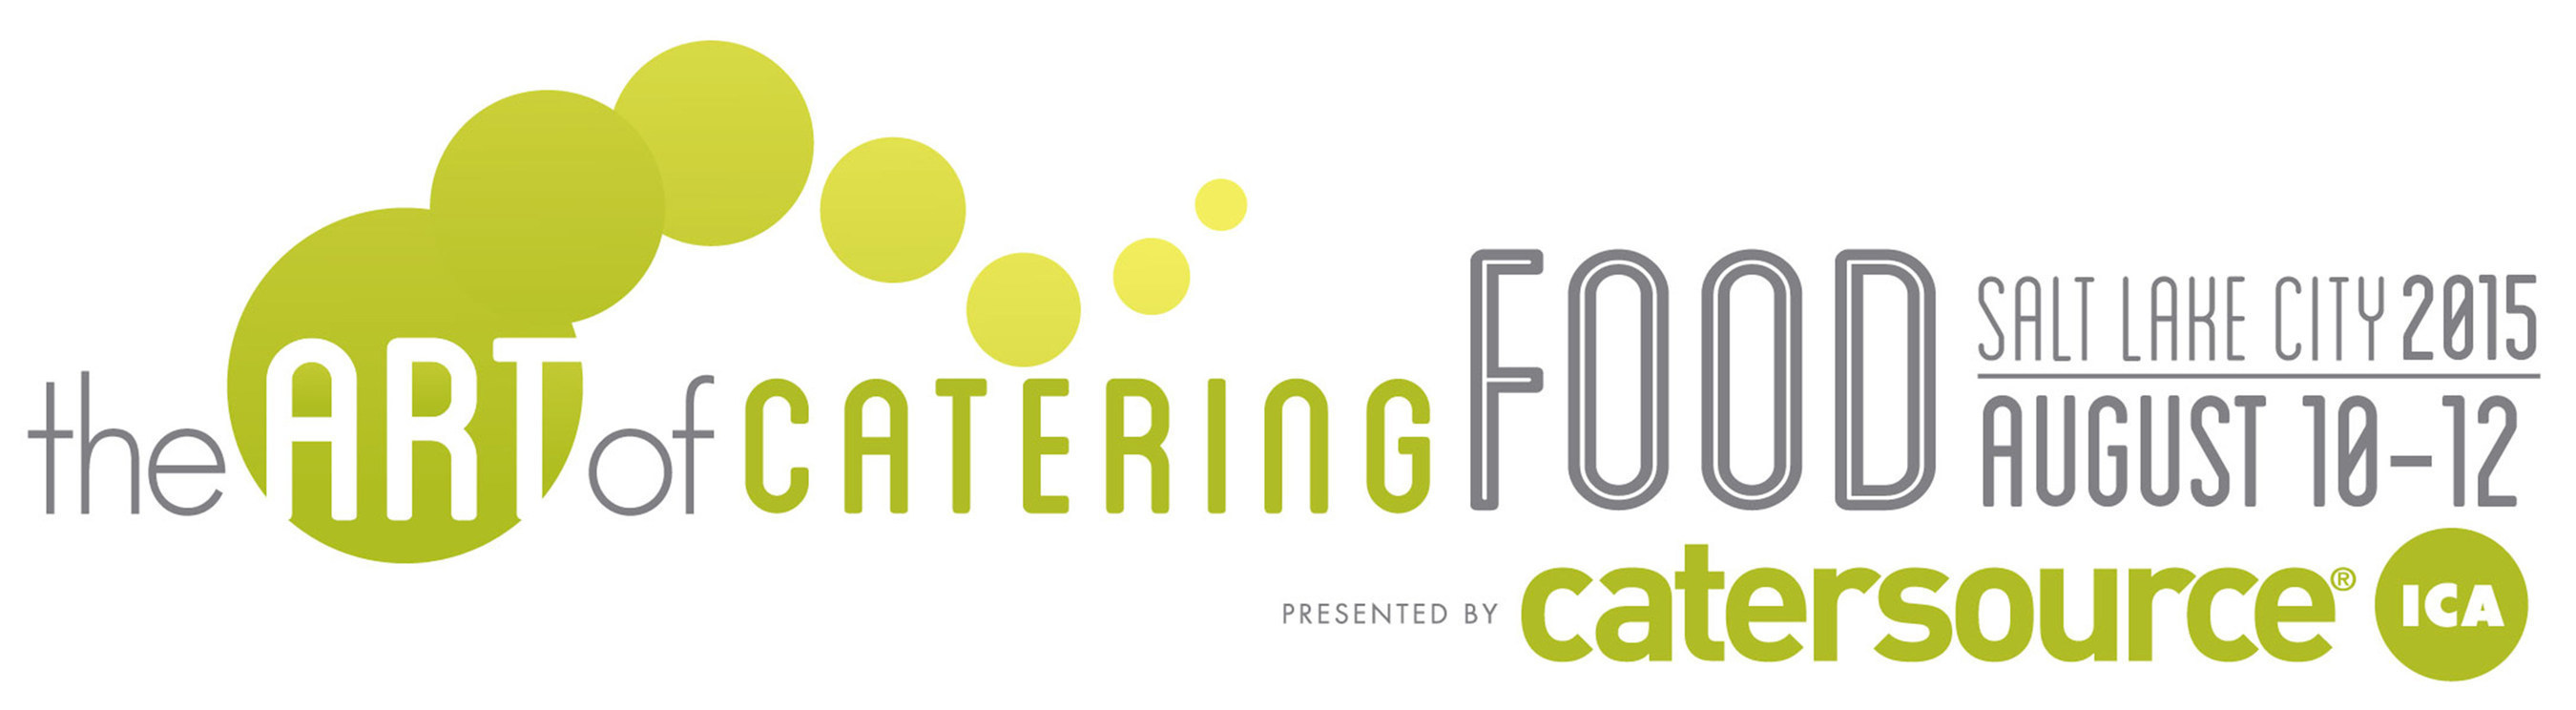 The Art of Catering Food | August 10-12, 2015 | Salt Lake City, UT